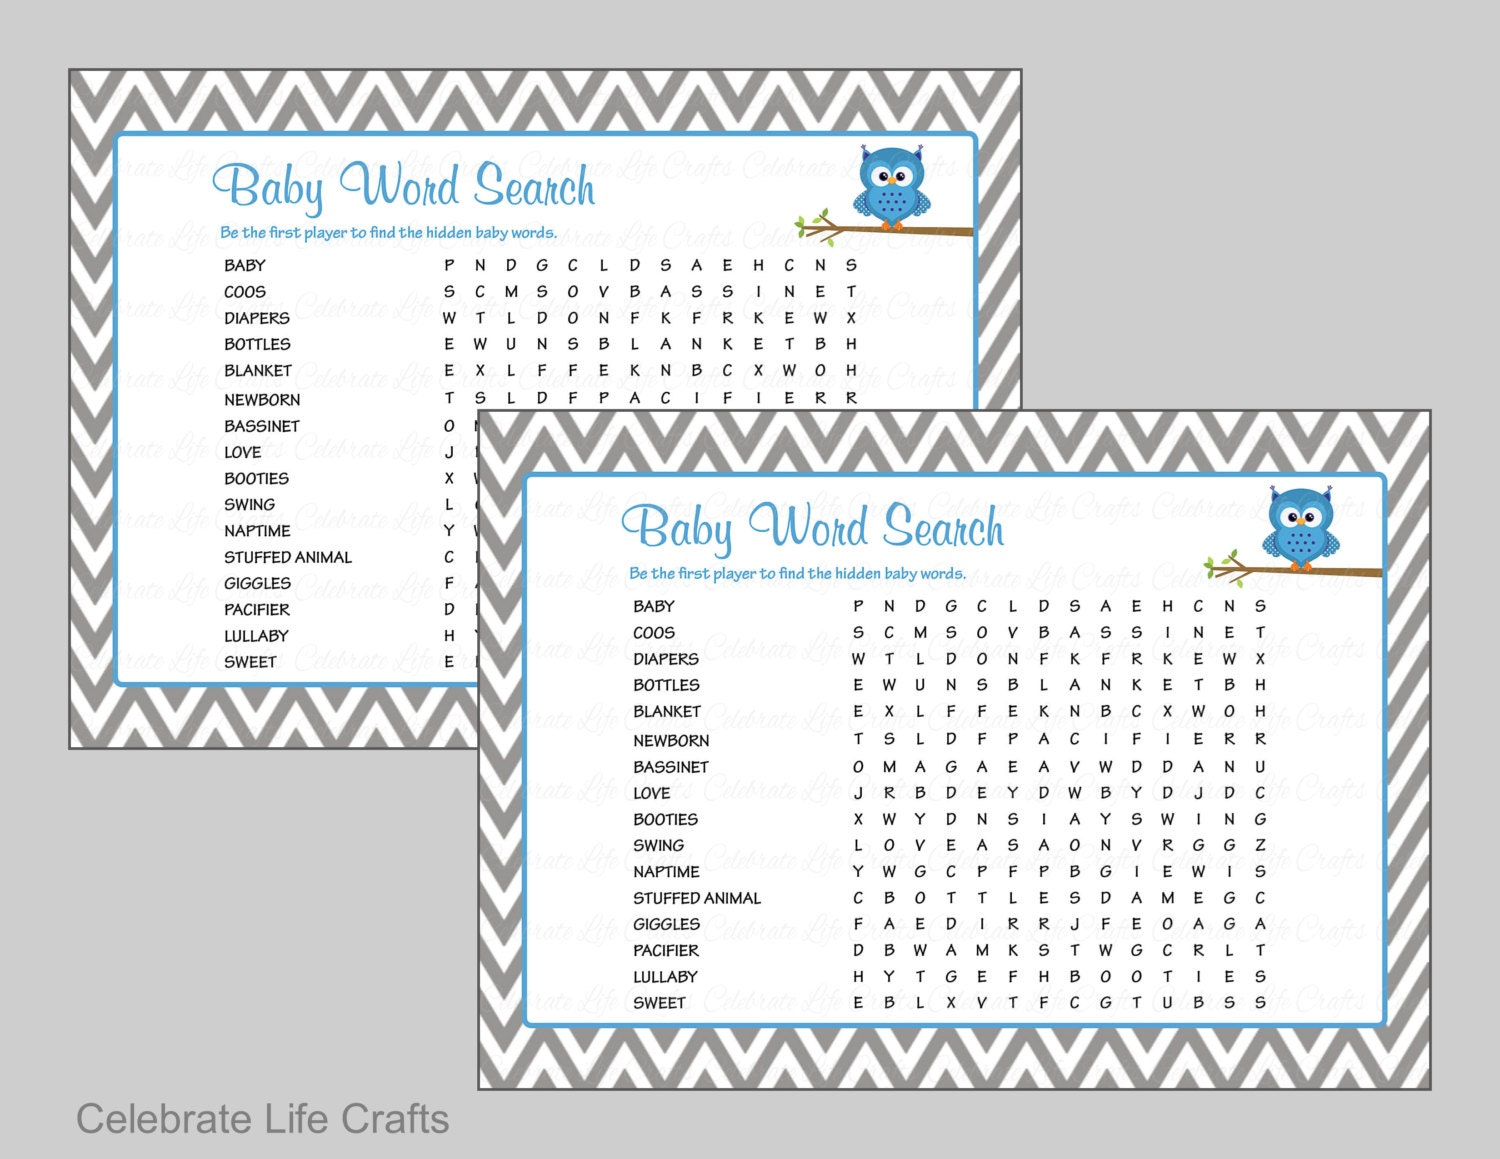 Monster image with printable baby shower games with answer key